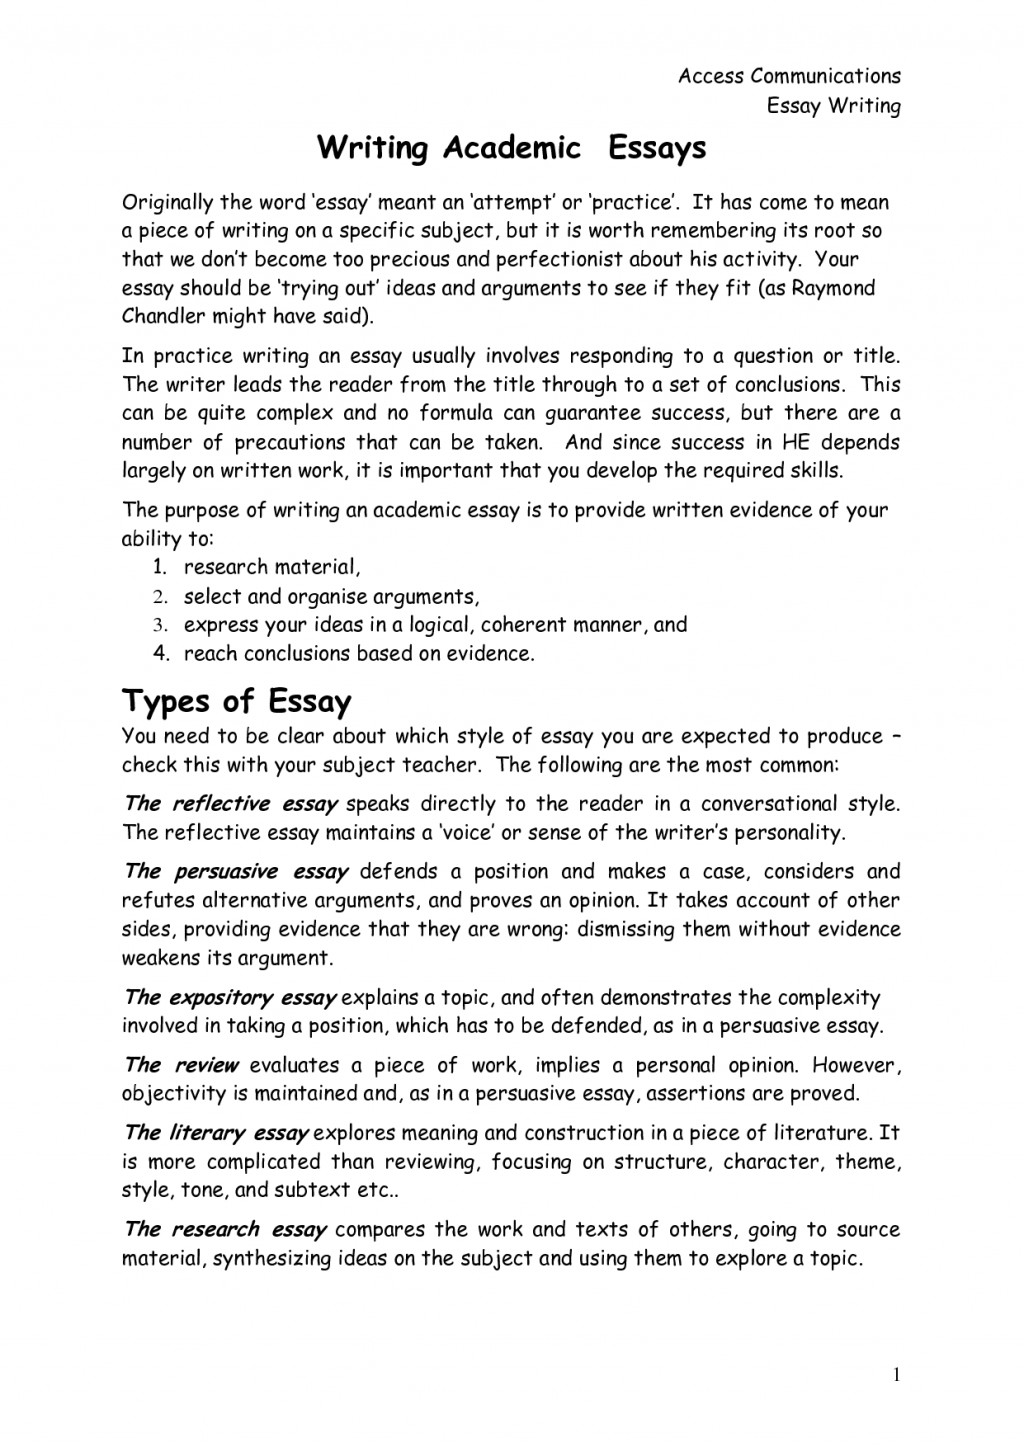 017 Essay Example Write For Me Amazing My Discount Code Online Free Large